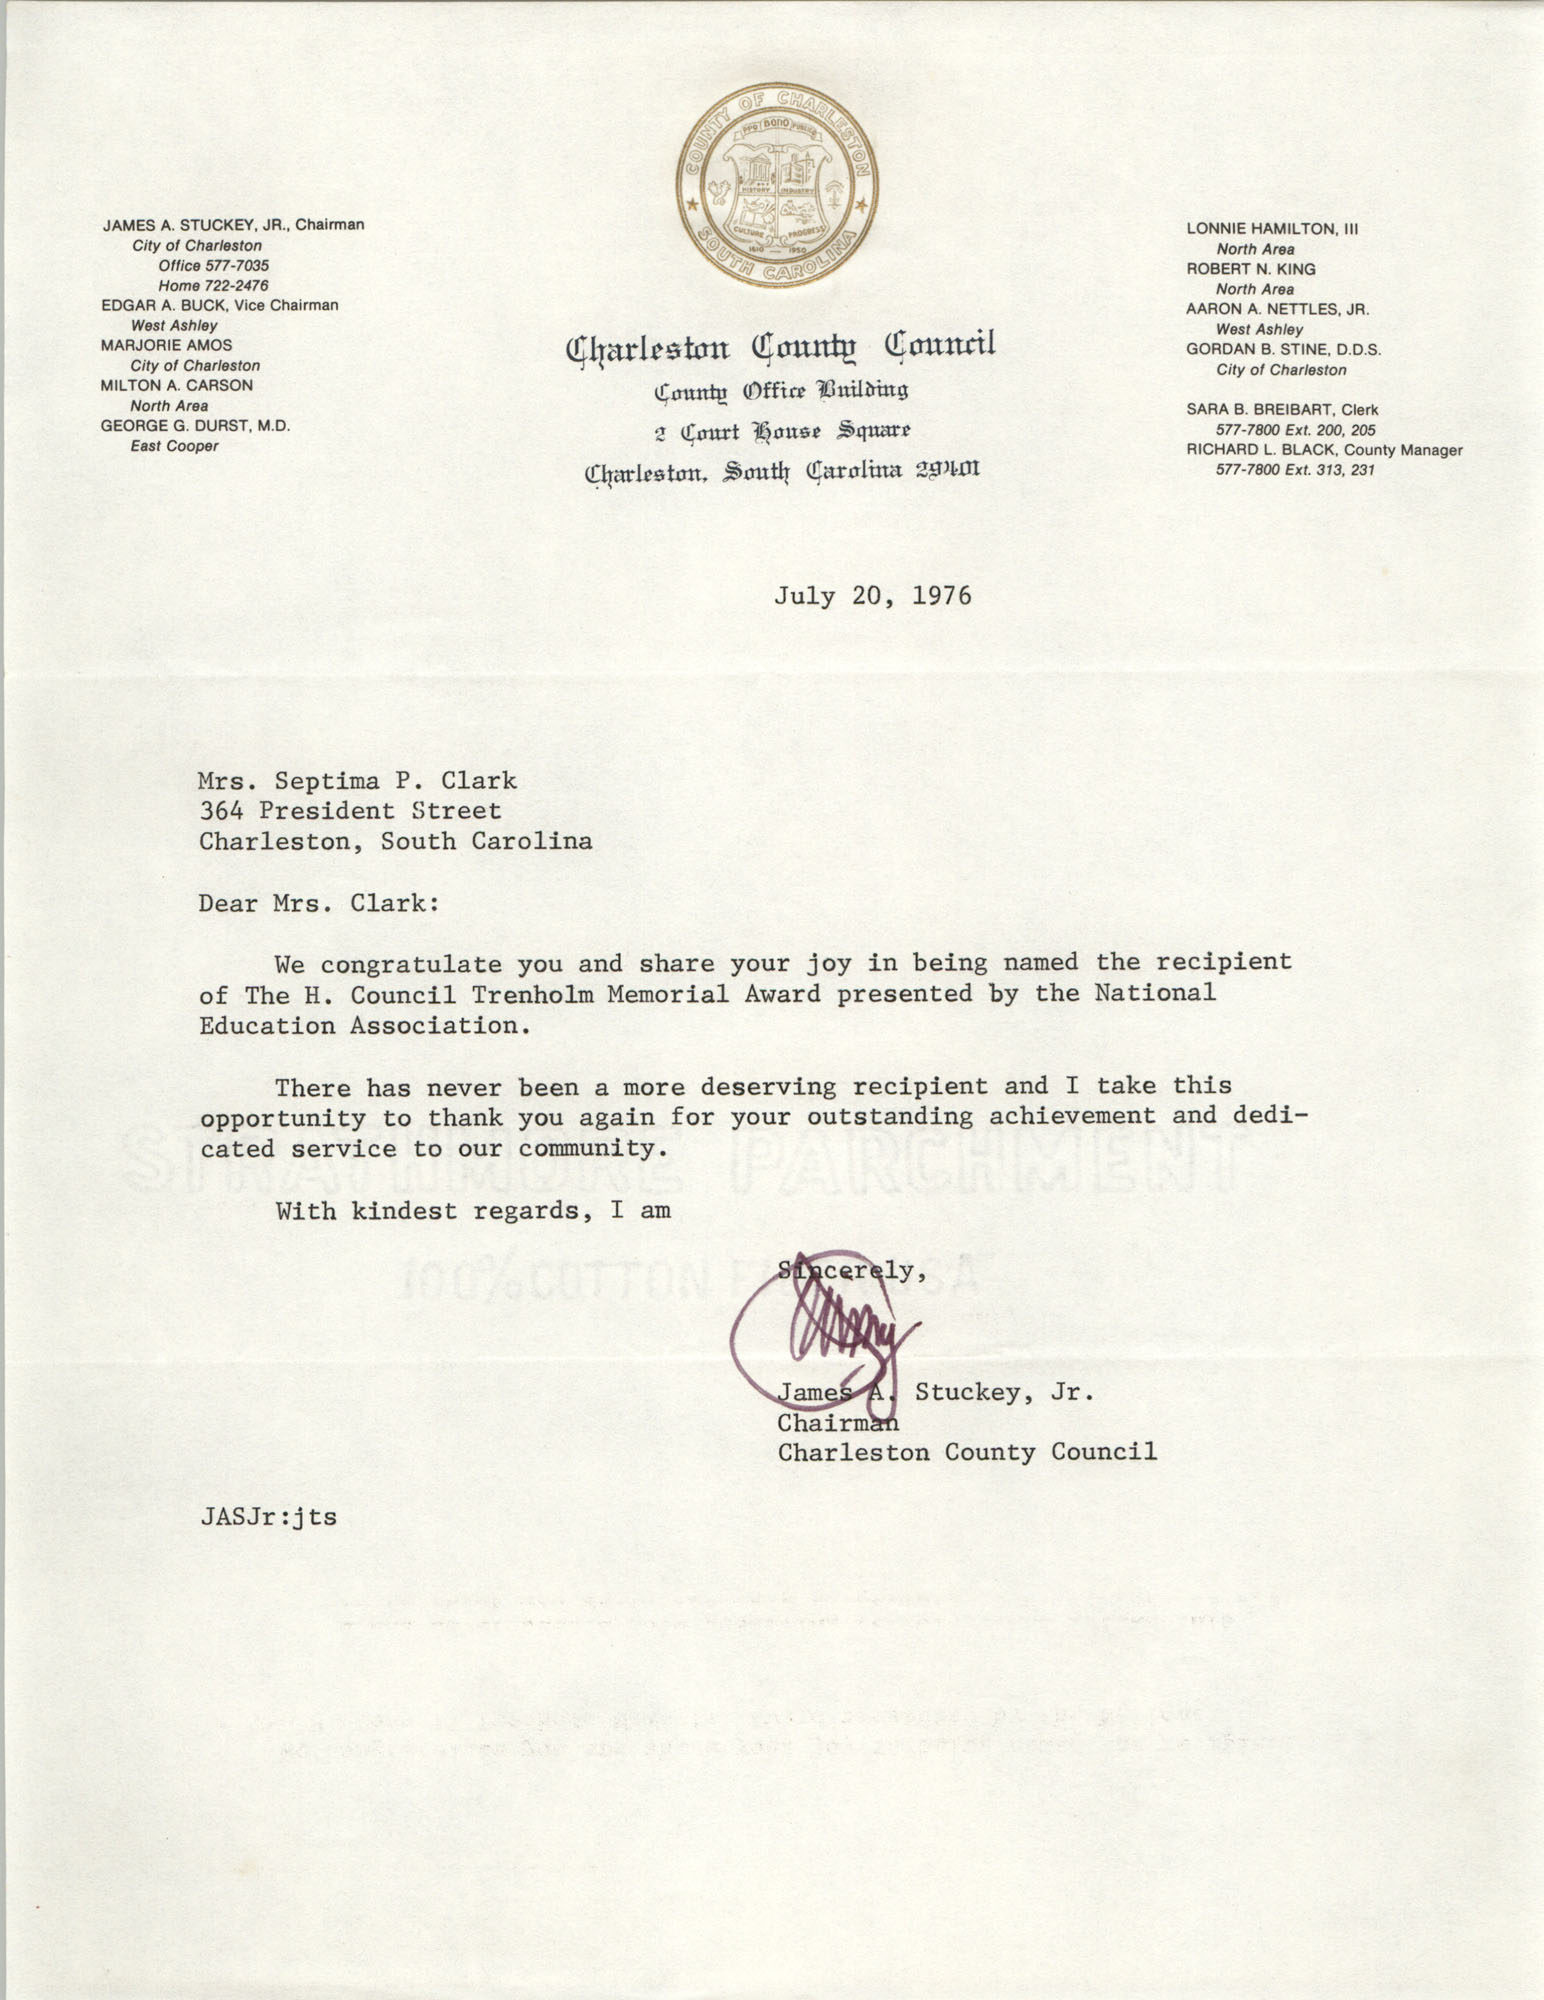 Letter from James A. Stuckey to Septima P. Clark, July 20, 1976